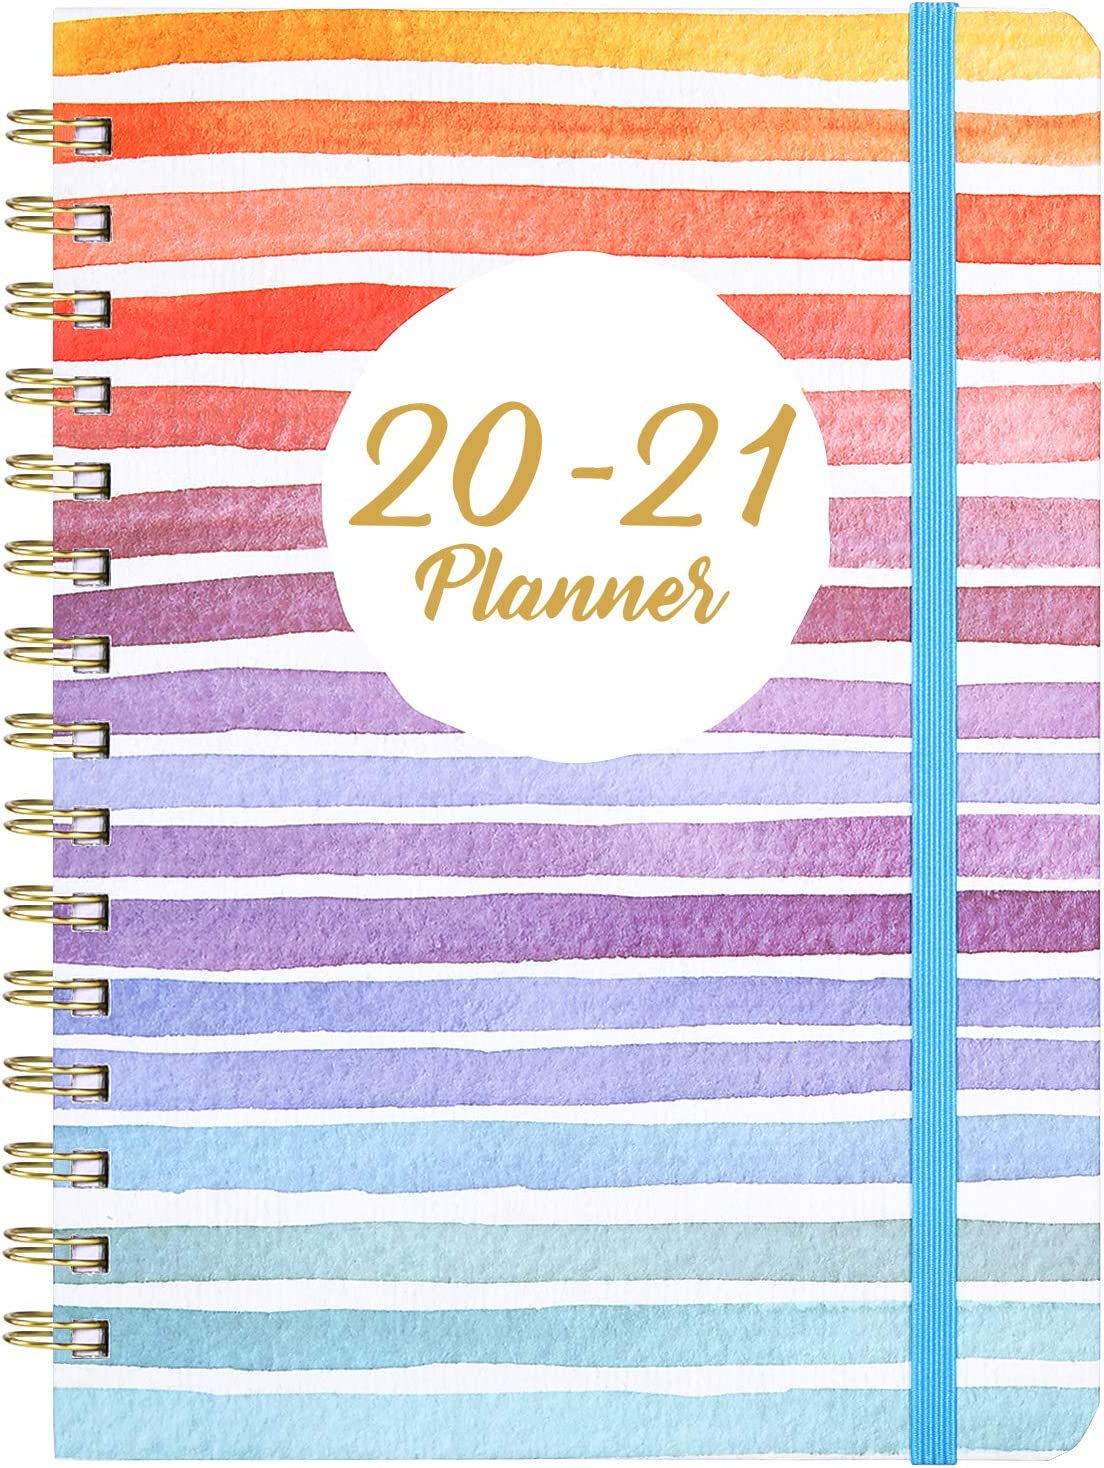 """Planner 2020-2021 - Academic Weekly & Monthly Planner with Tabs, 6.3"""" x 8.4"""", Hardcover with Back Pocket + Thick Paper + Banded, Twin-Wire Binding - Colorful and Fun"""